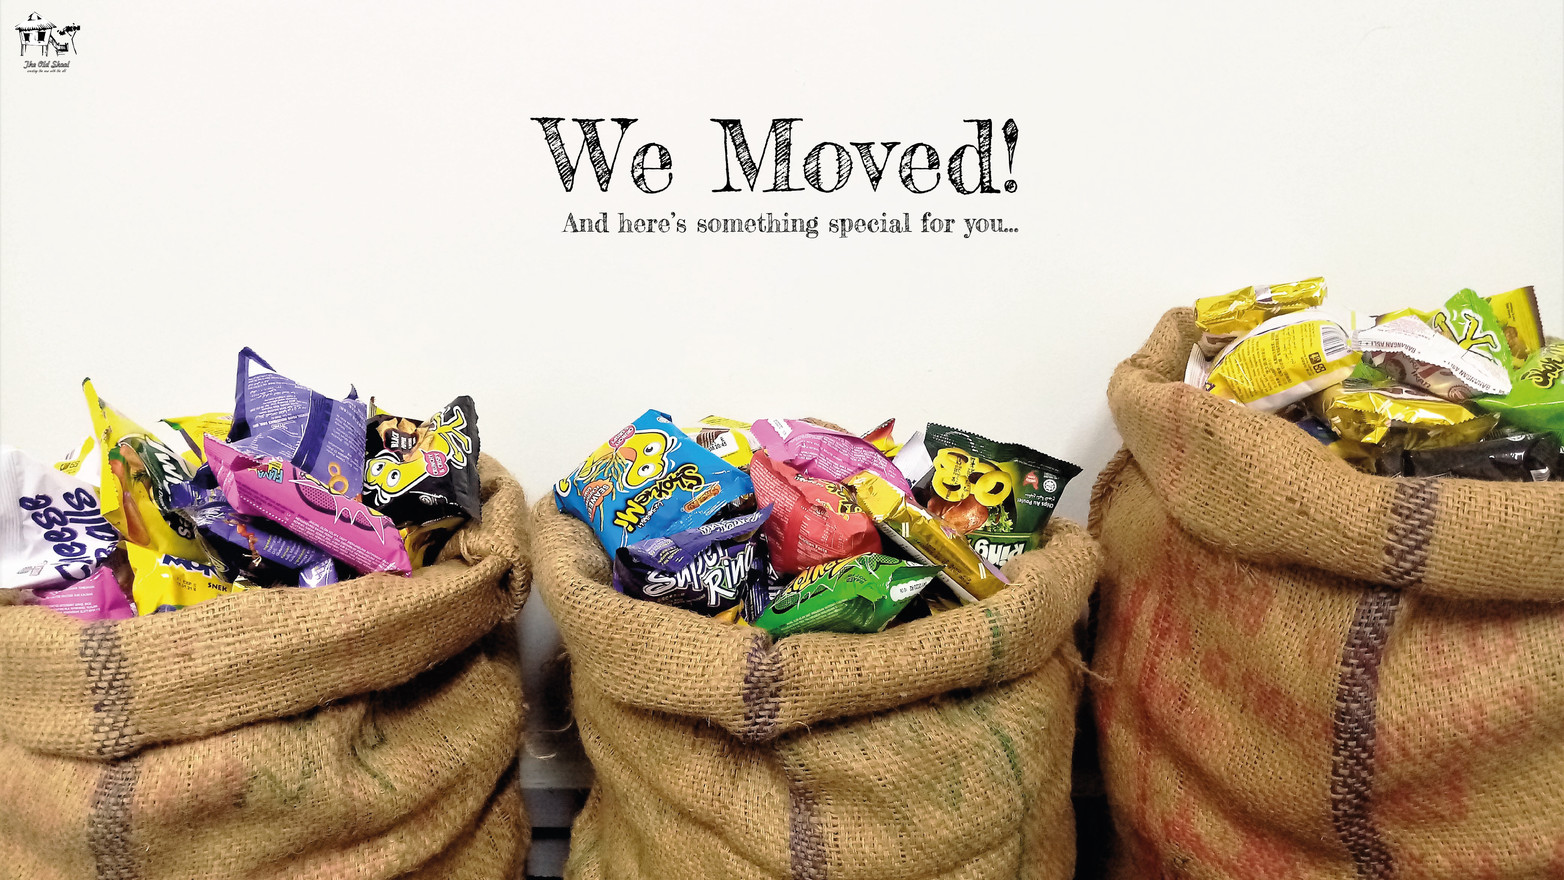 Relocation Promotion